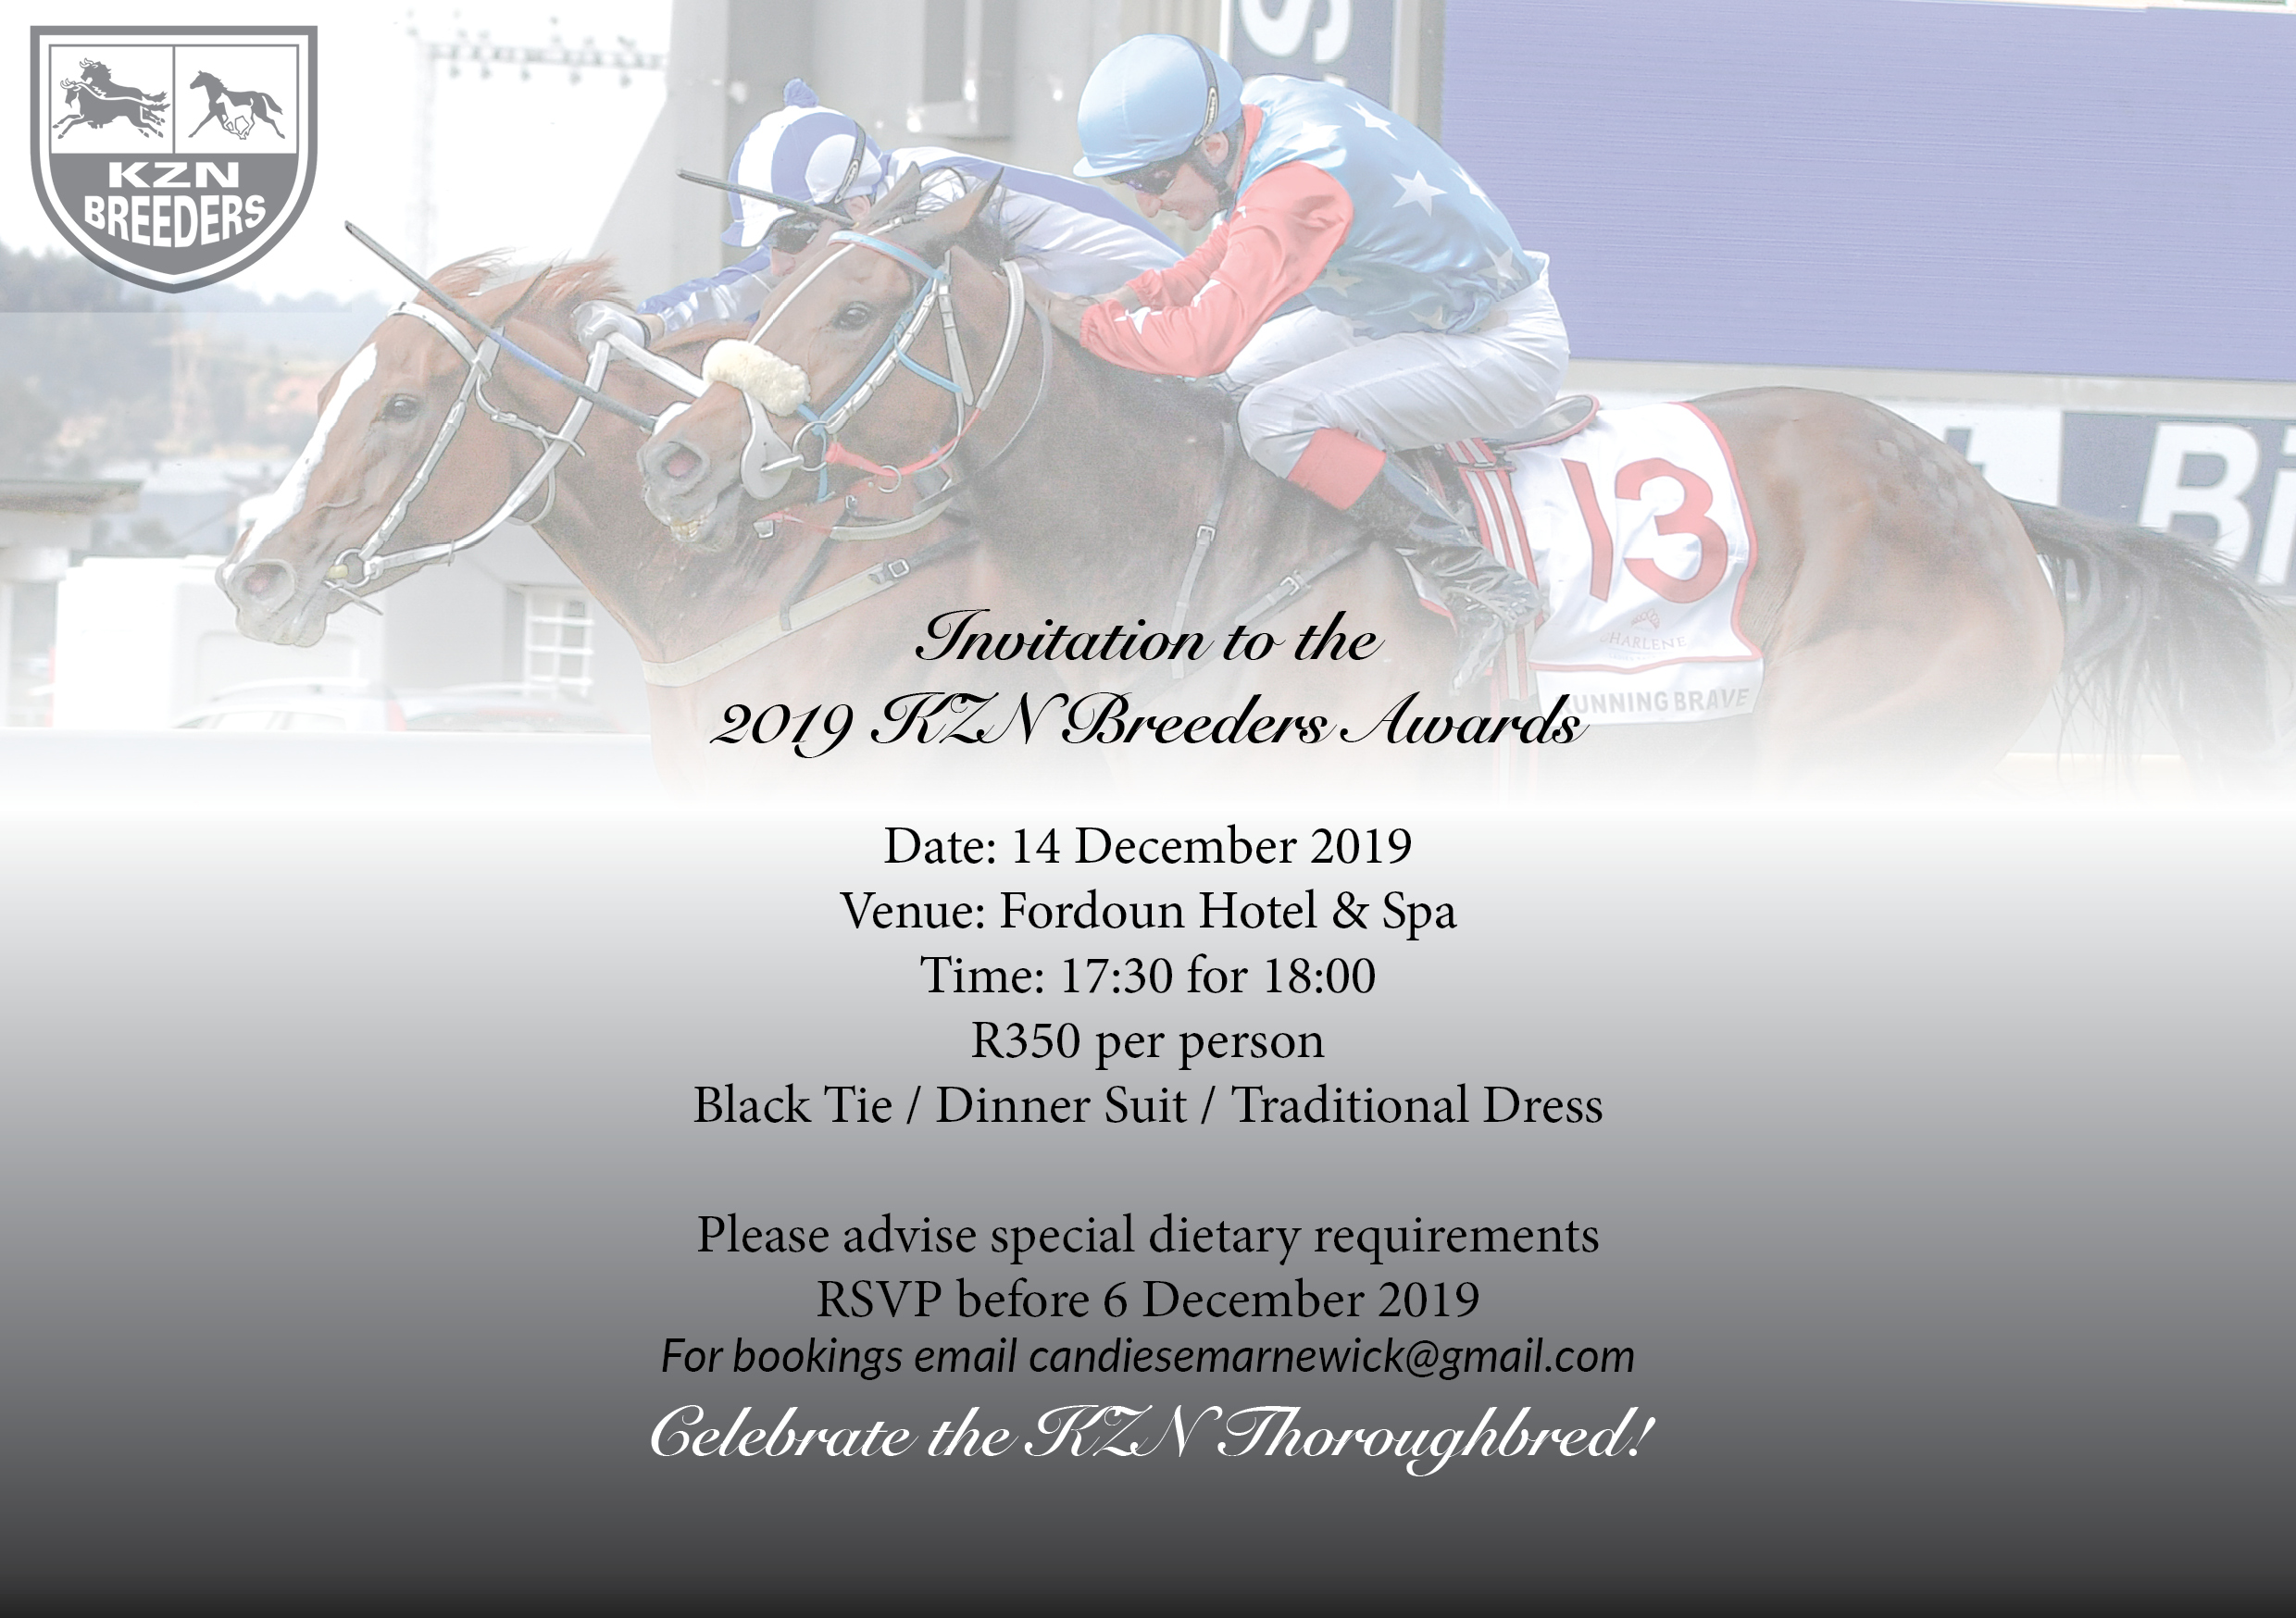 Invitation: KZN Breeders Awards 2019